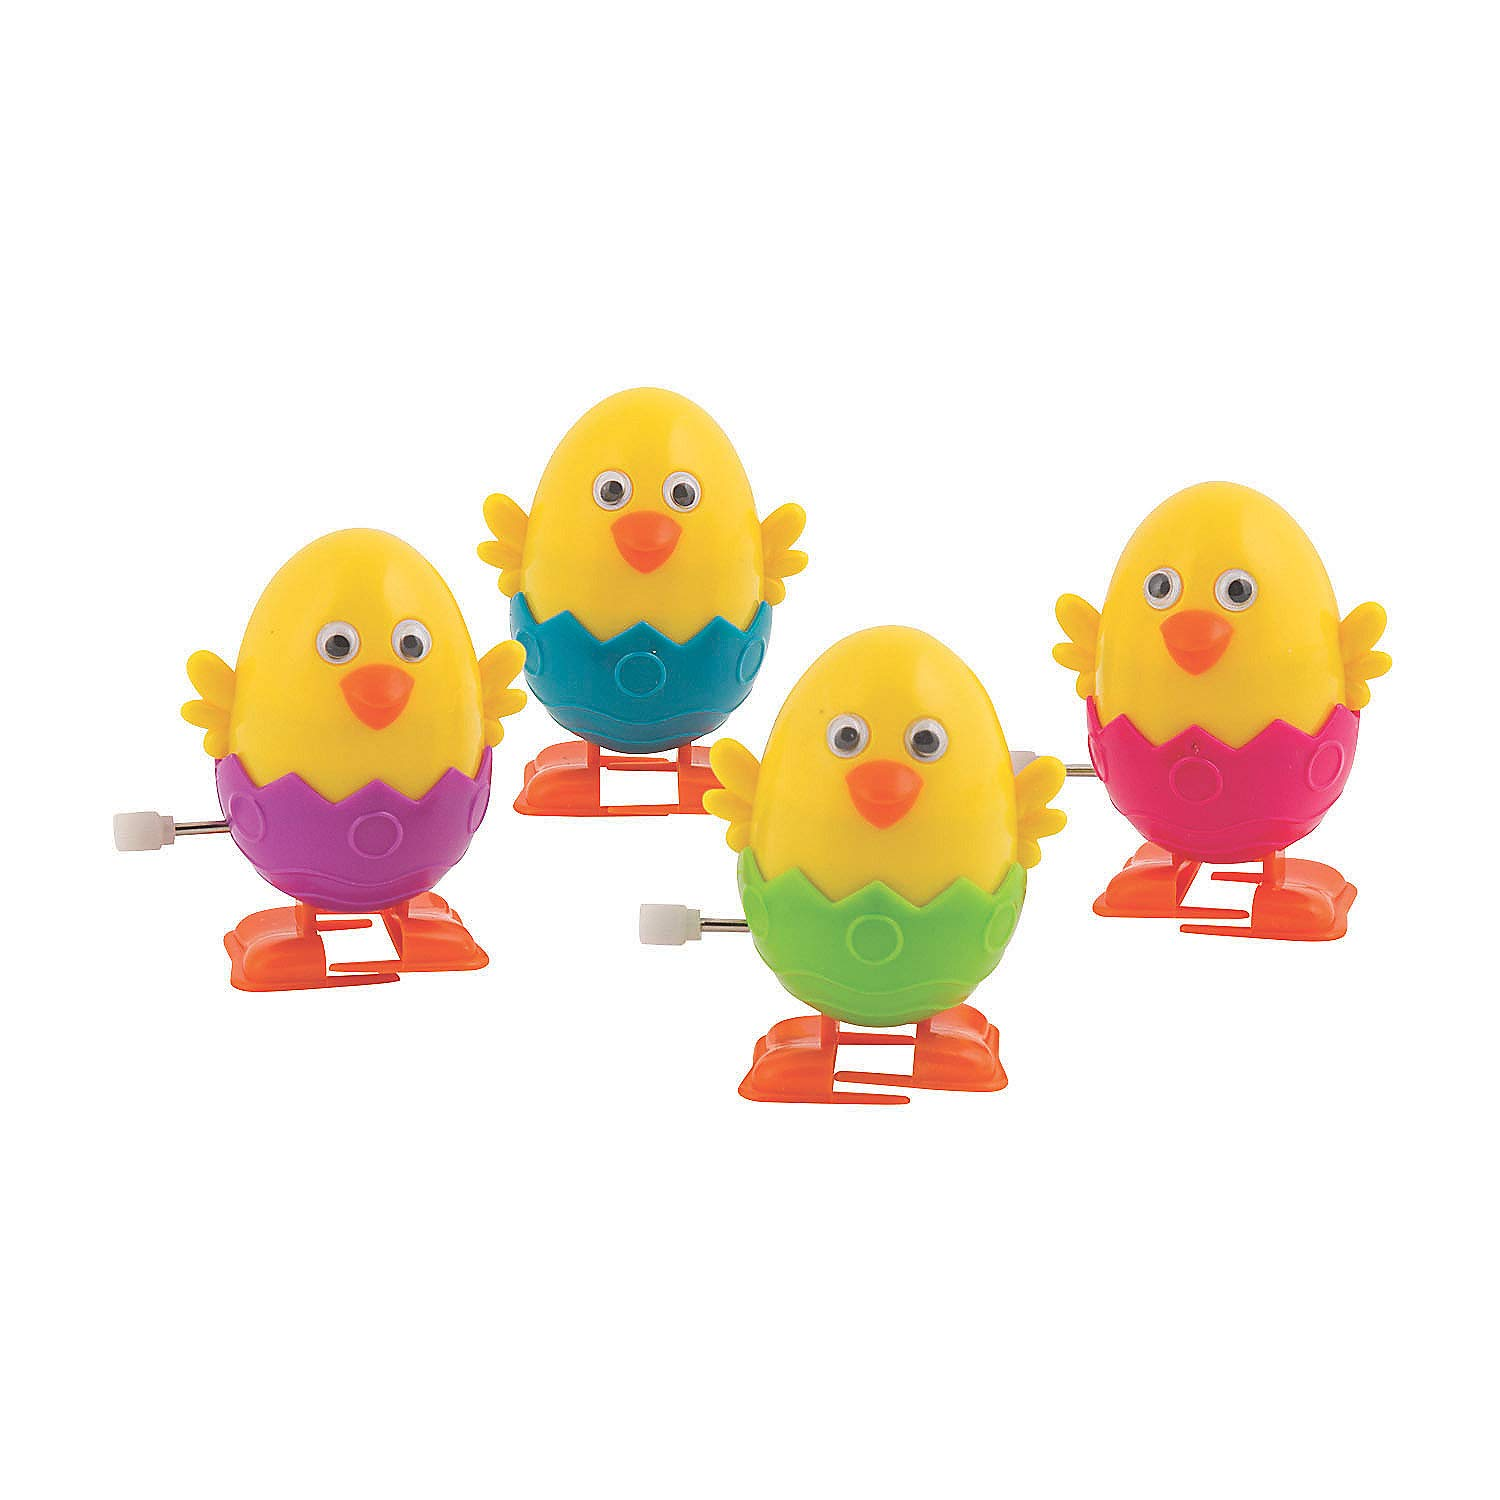 Fun Express - Easter Egg Wind-Ups for Easter - Toys - Character Toys - Wind Ups & Paratroopers - Easter - 12 Pieces by Fun Express